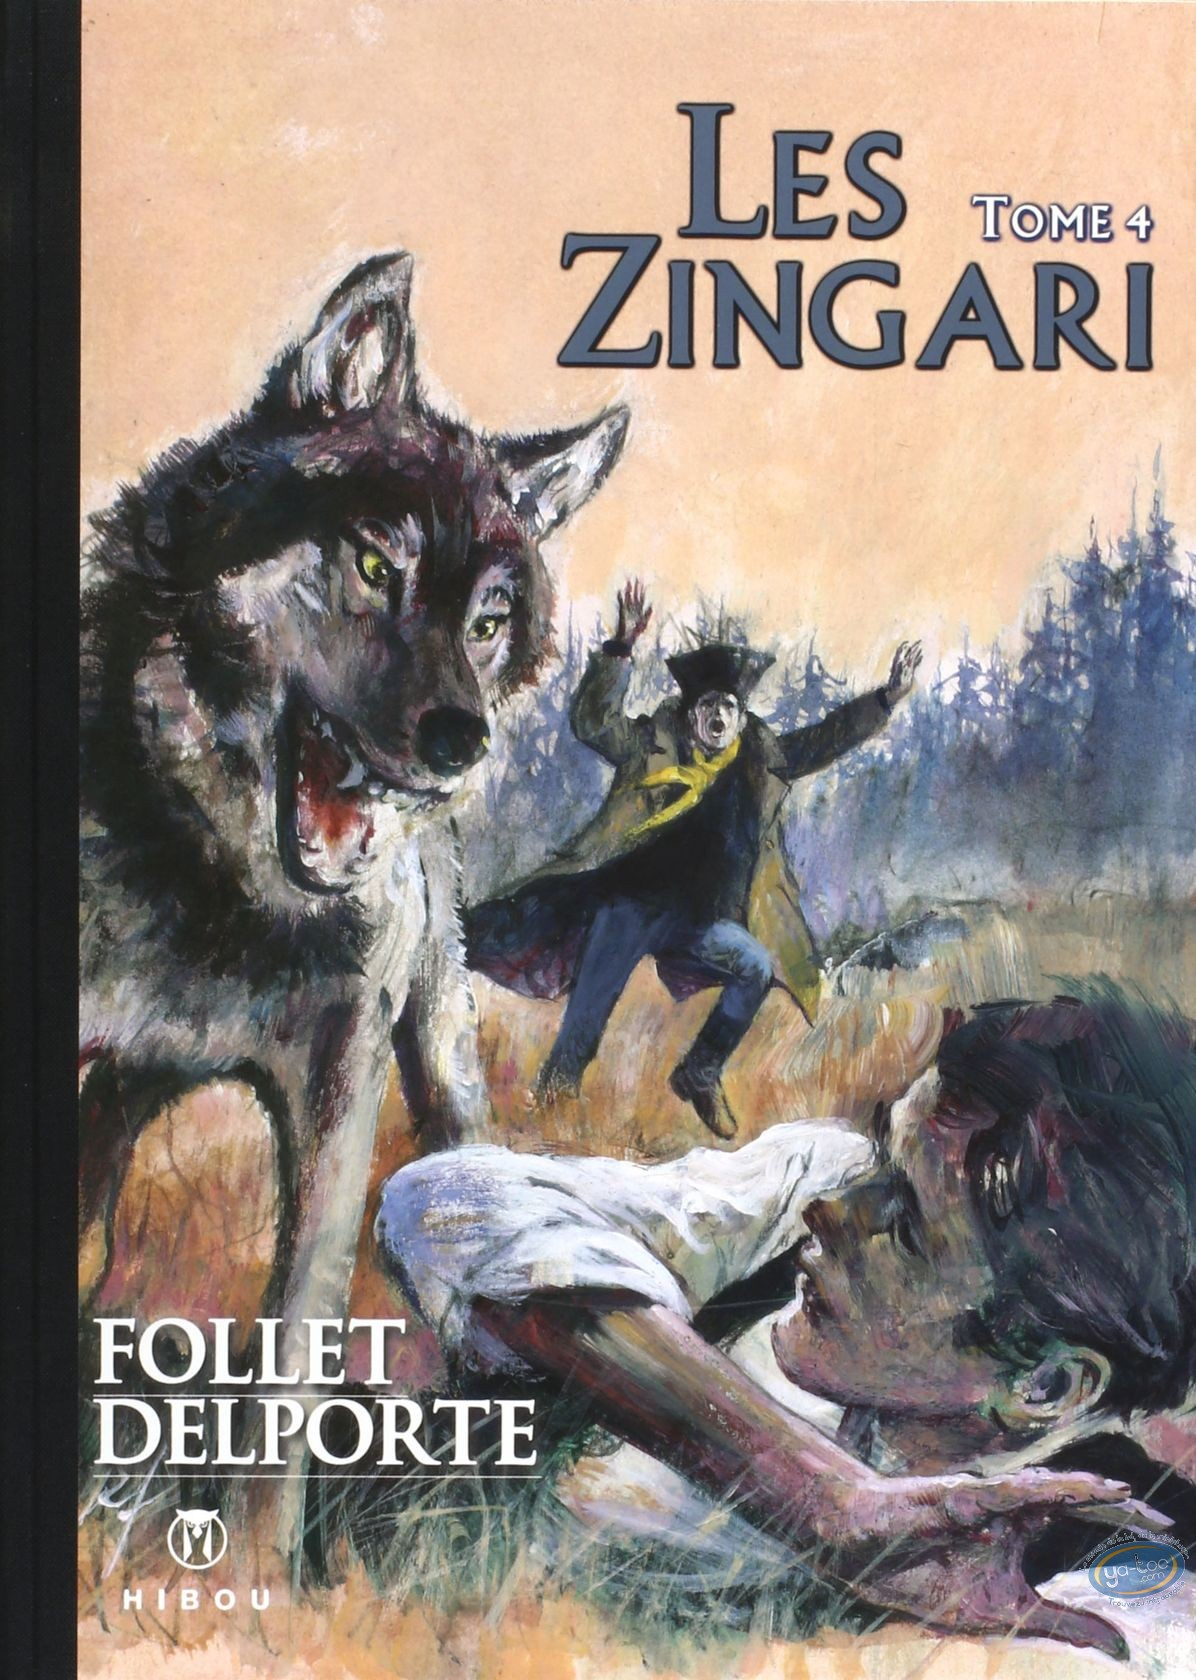 Limited First Edition, Zingari (Les) : Les Zingari